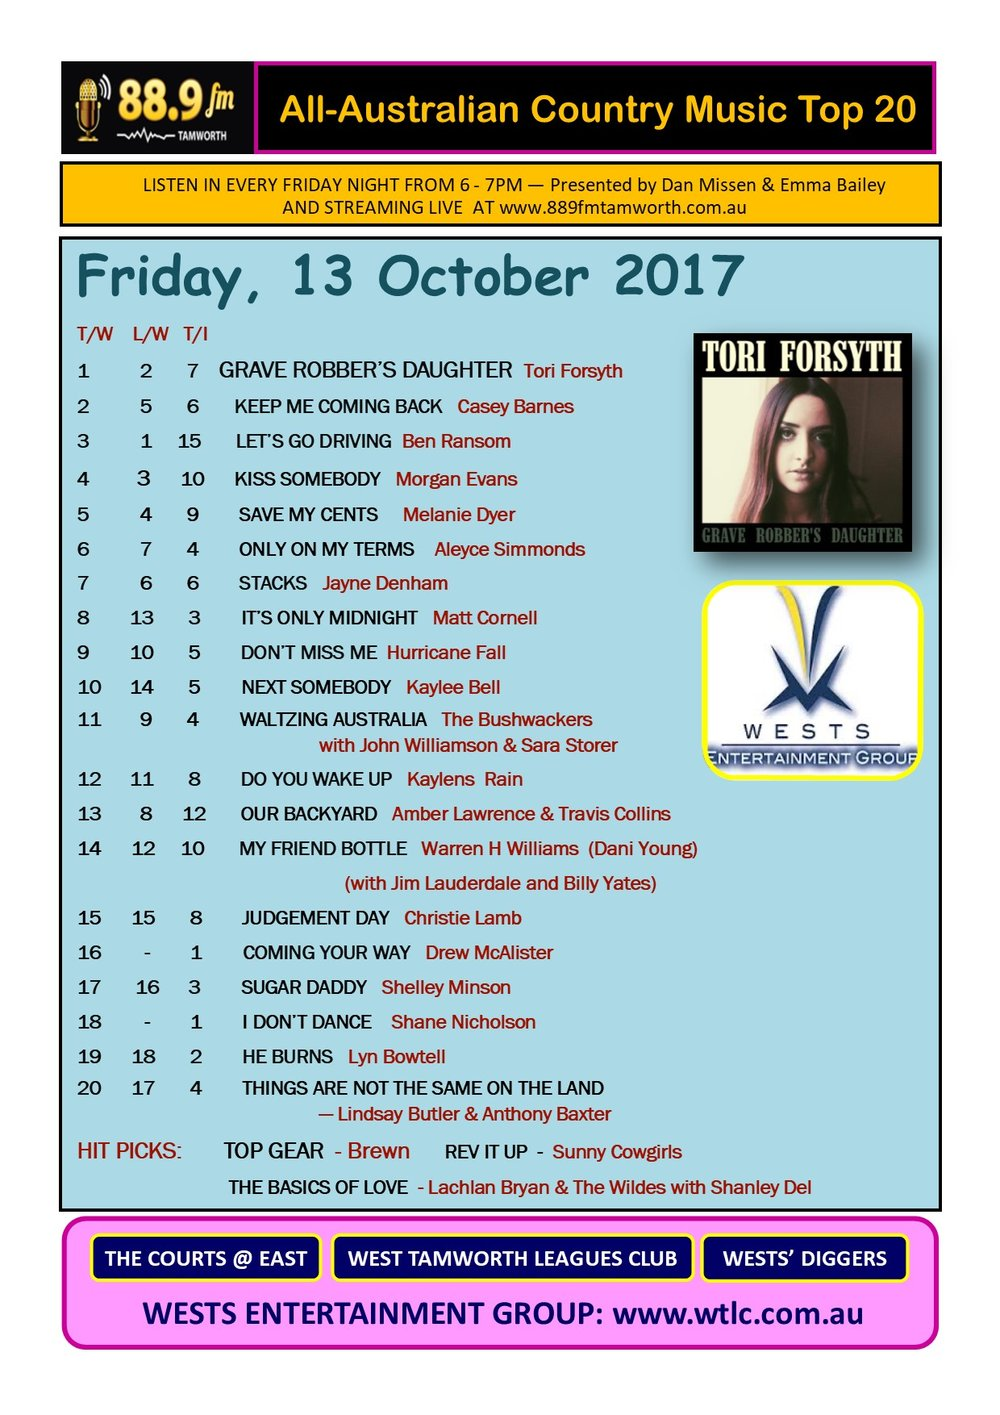 Australian Country Music Top 20 - October 13